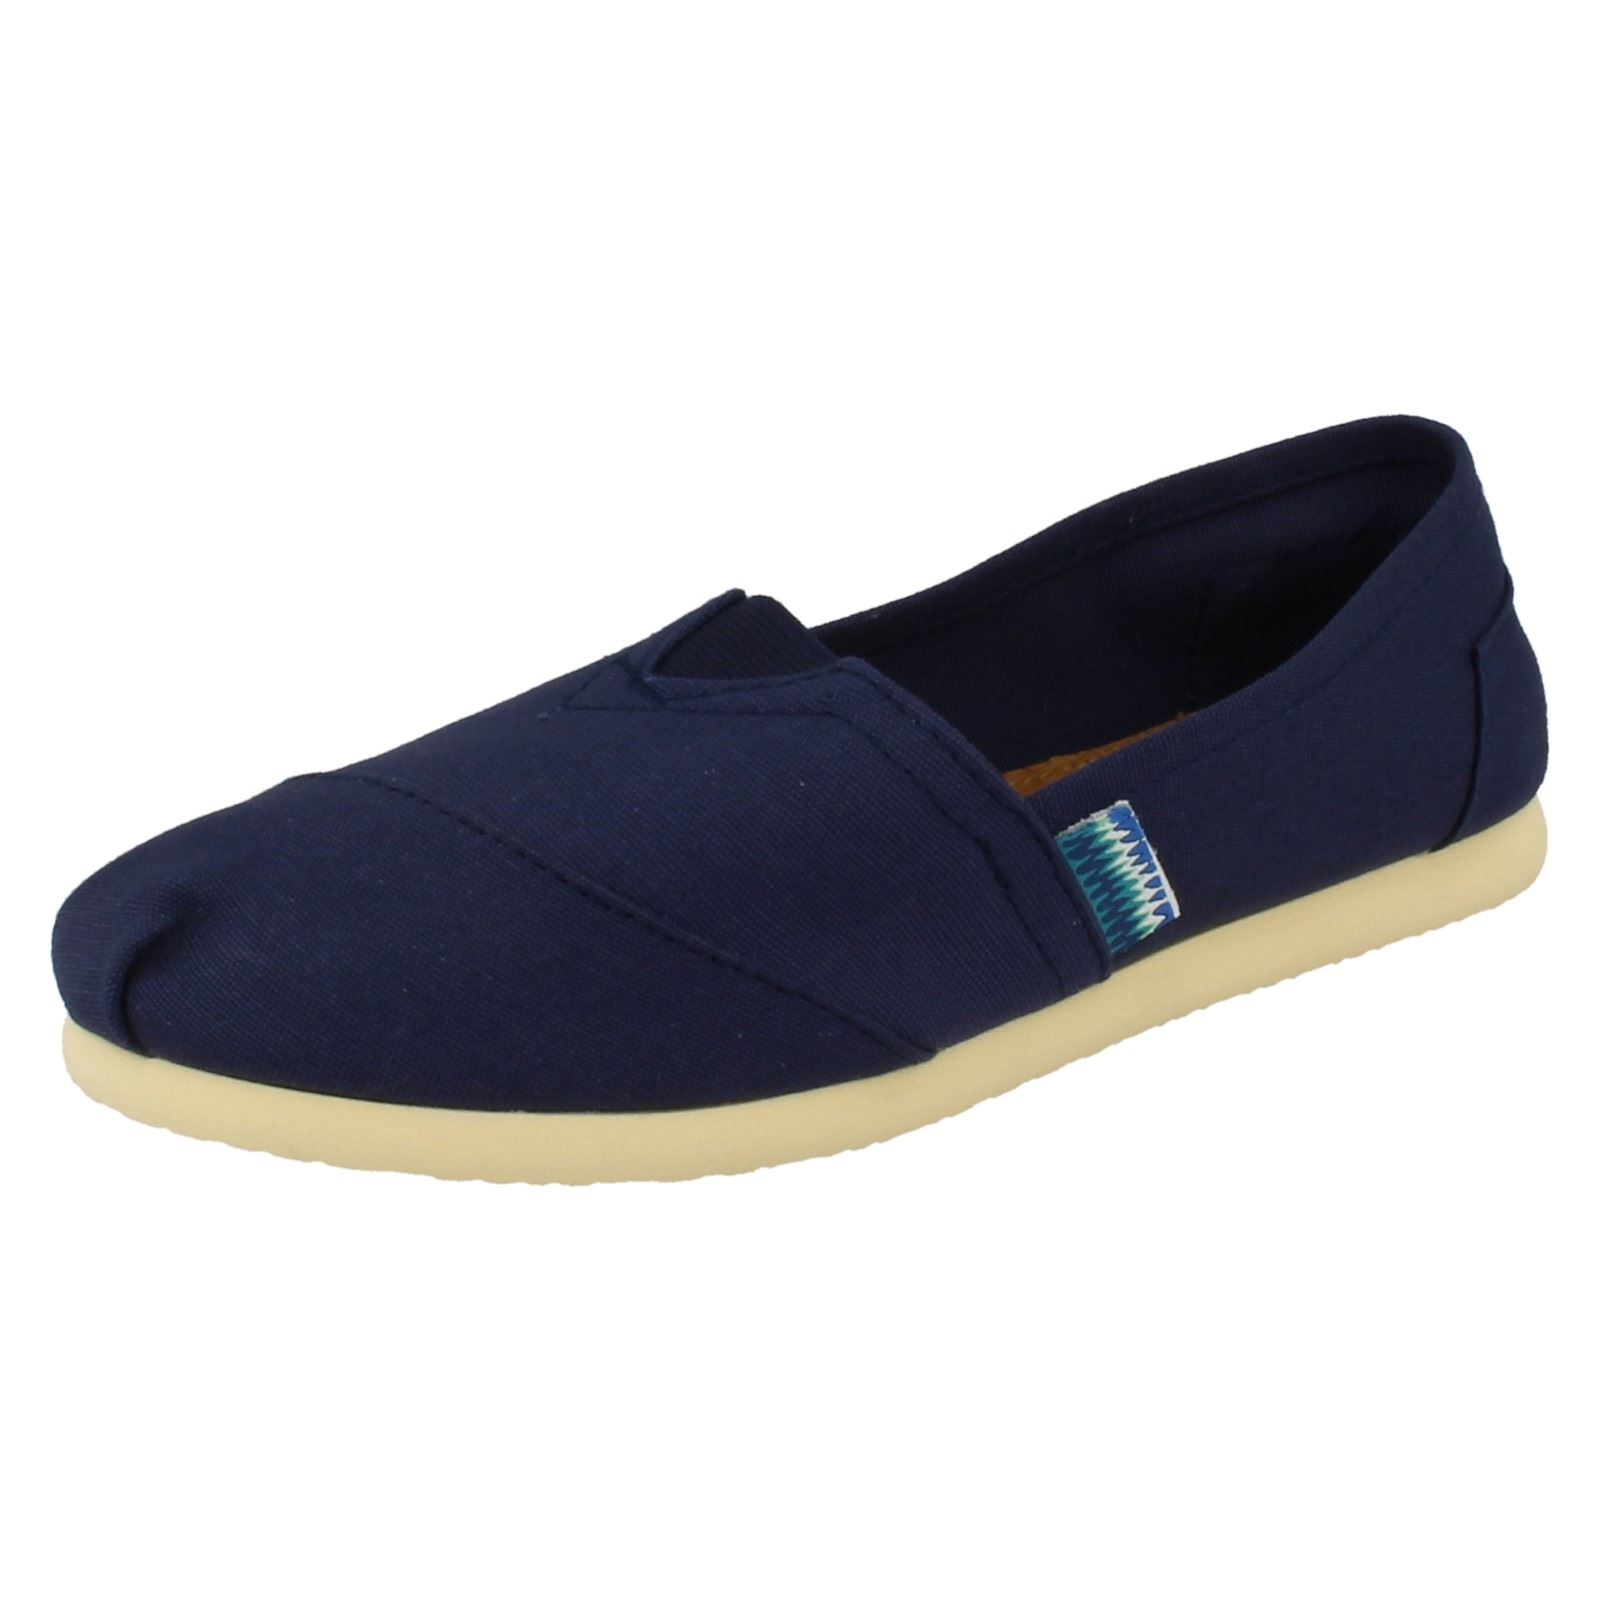 Mujeres Spot on Flat Escudete Slip On 'F8780'